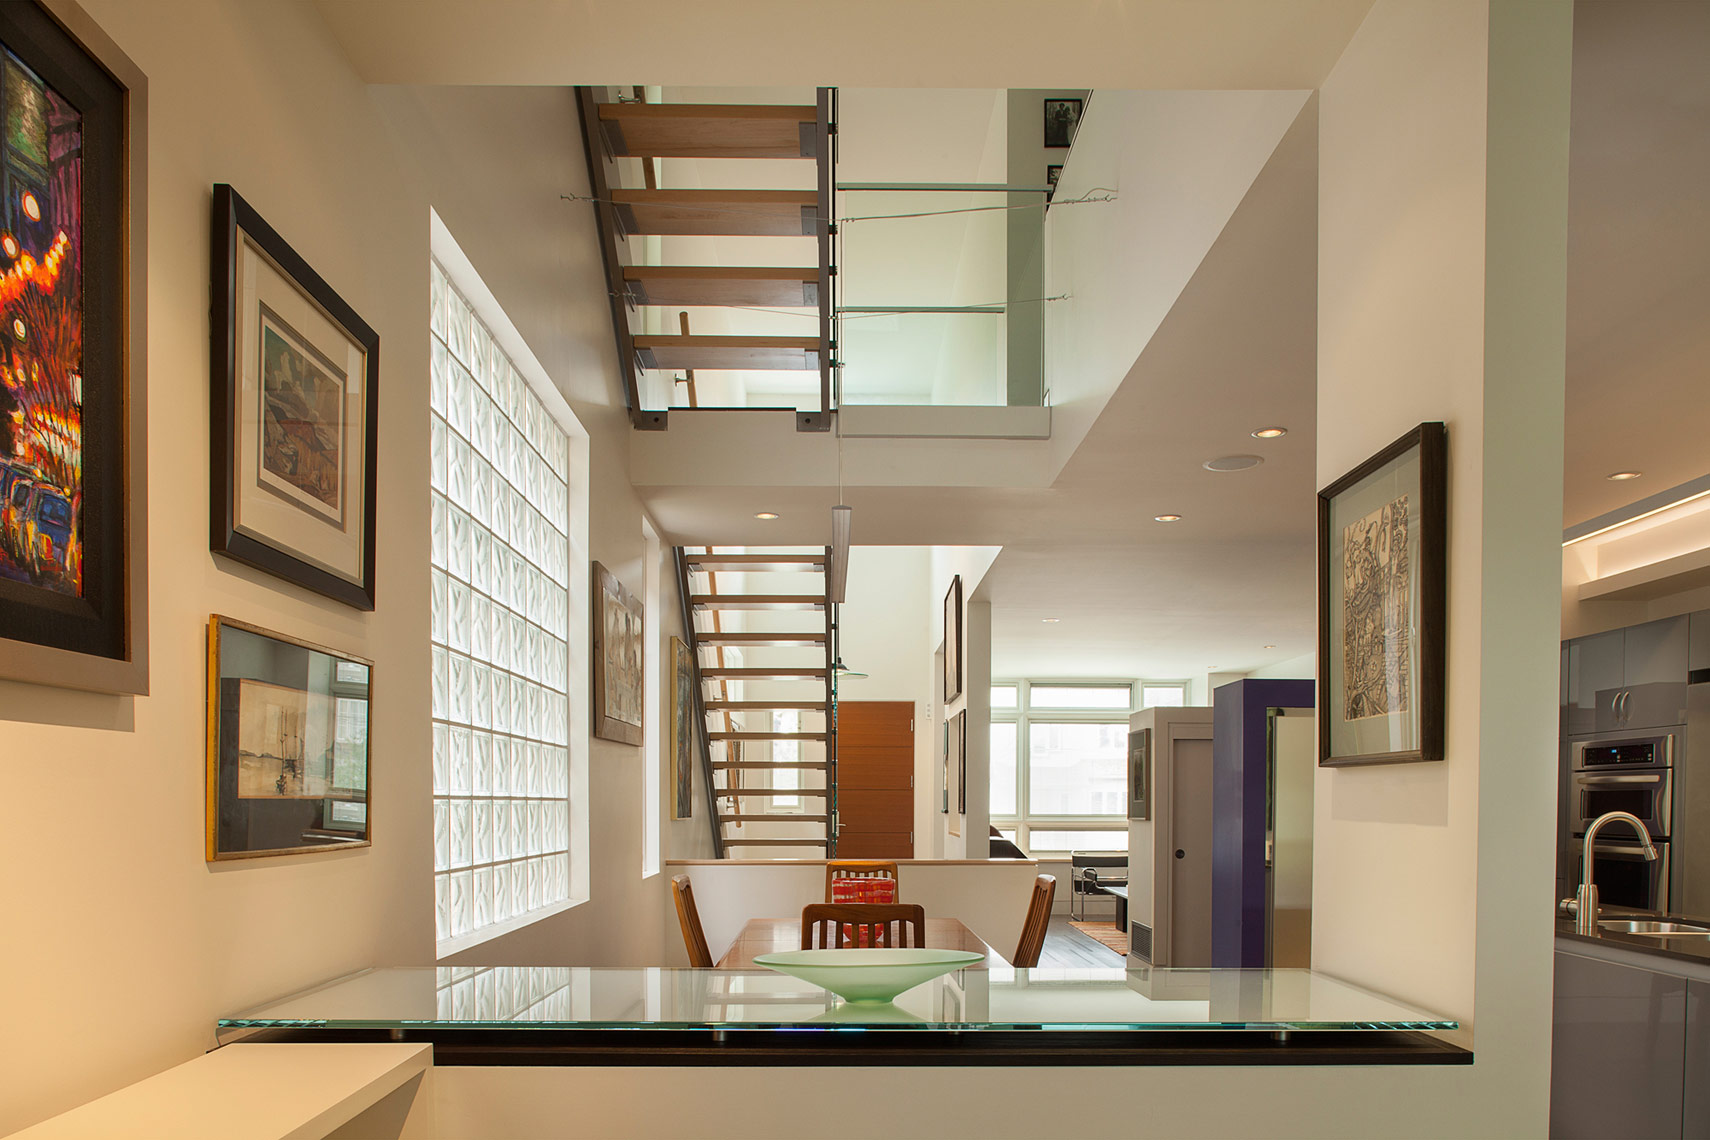 Residential-Interior-stairs-view-BLT